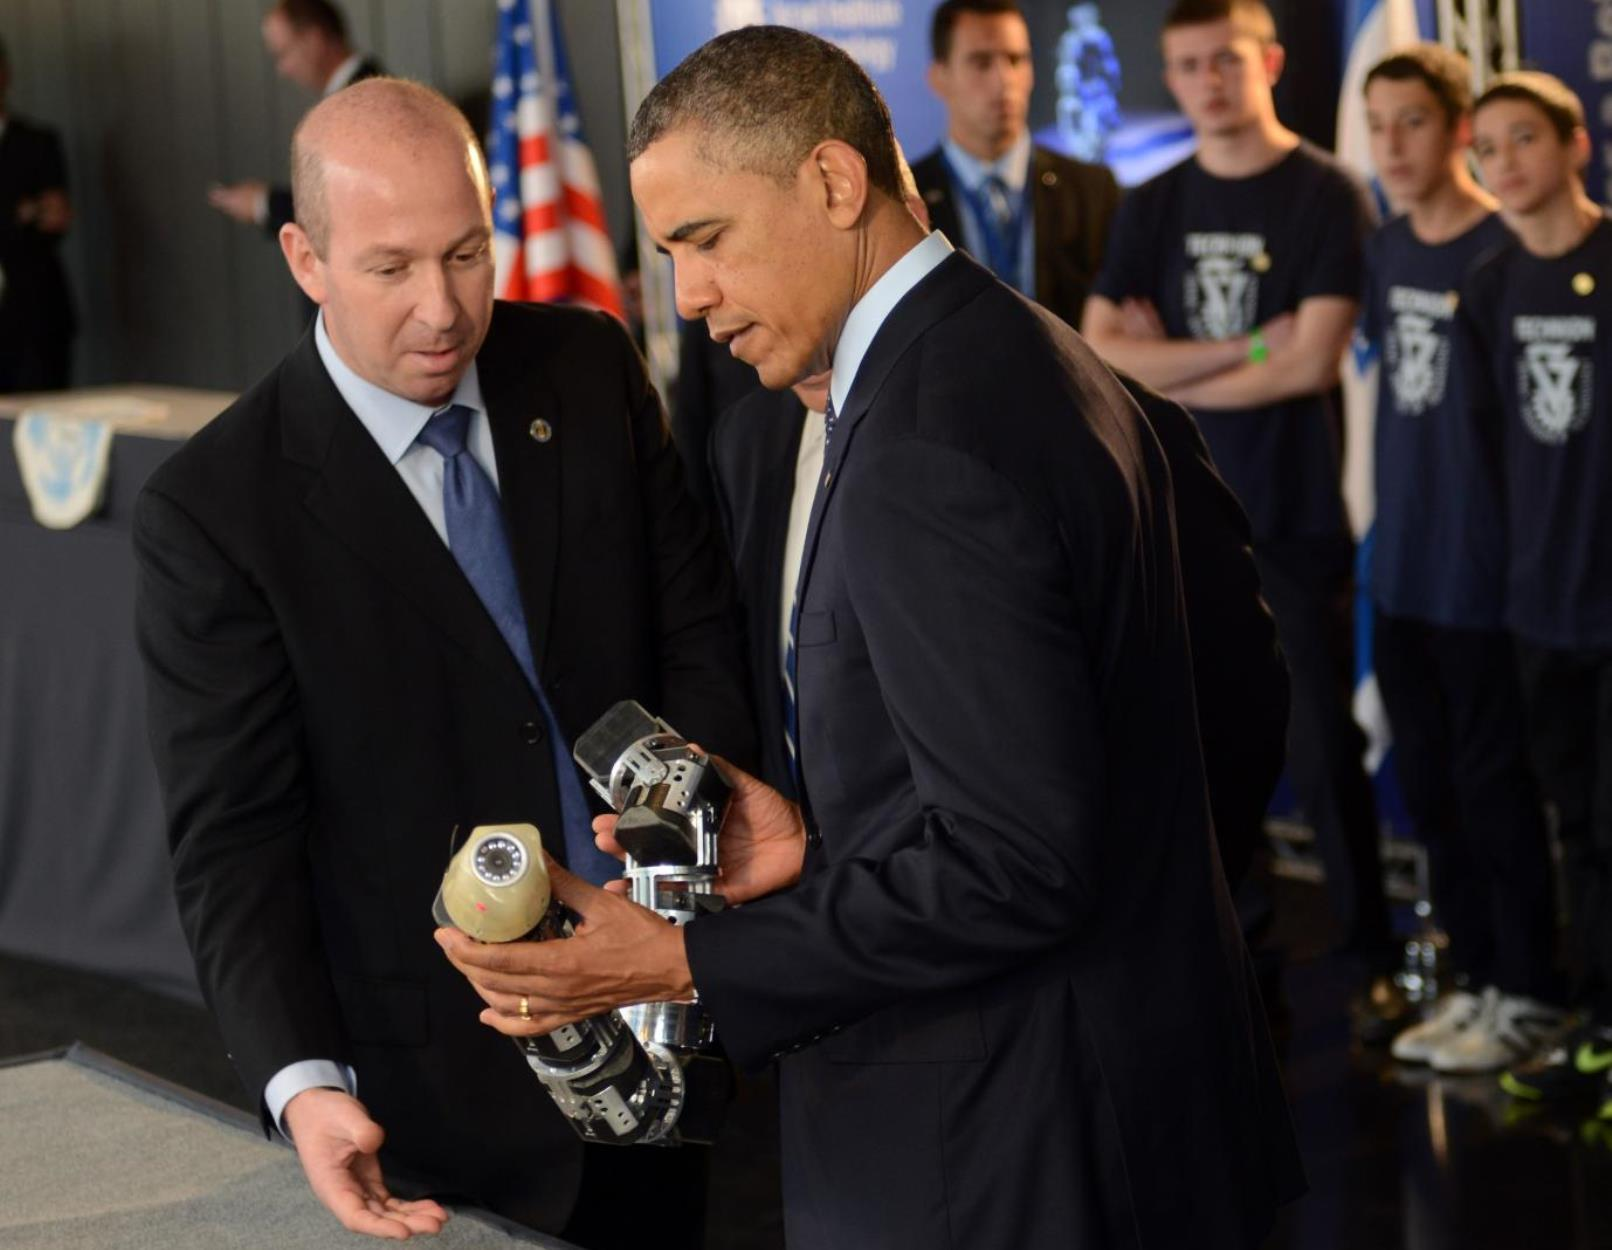 Prof. Alon Wolf showing the snake robot to President Obama at the Technion in 2013. Photo by Kobi Gideon/GPO